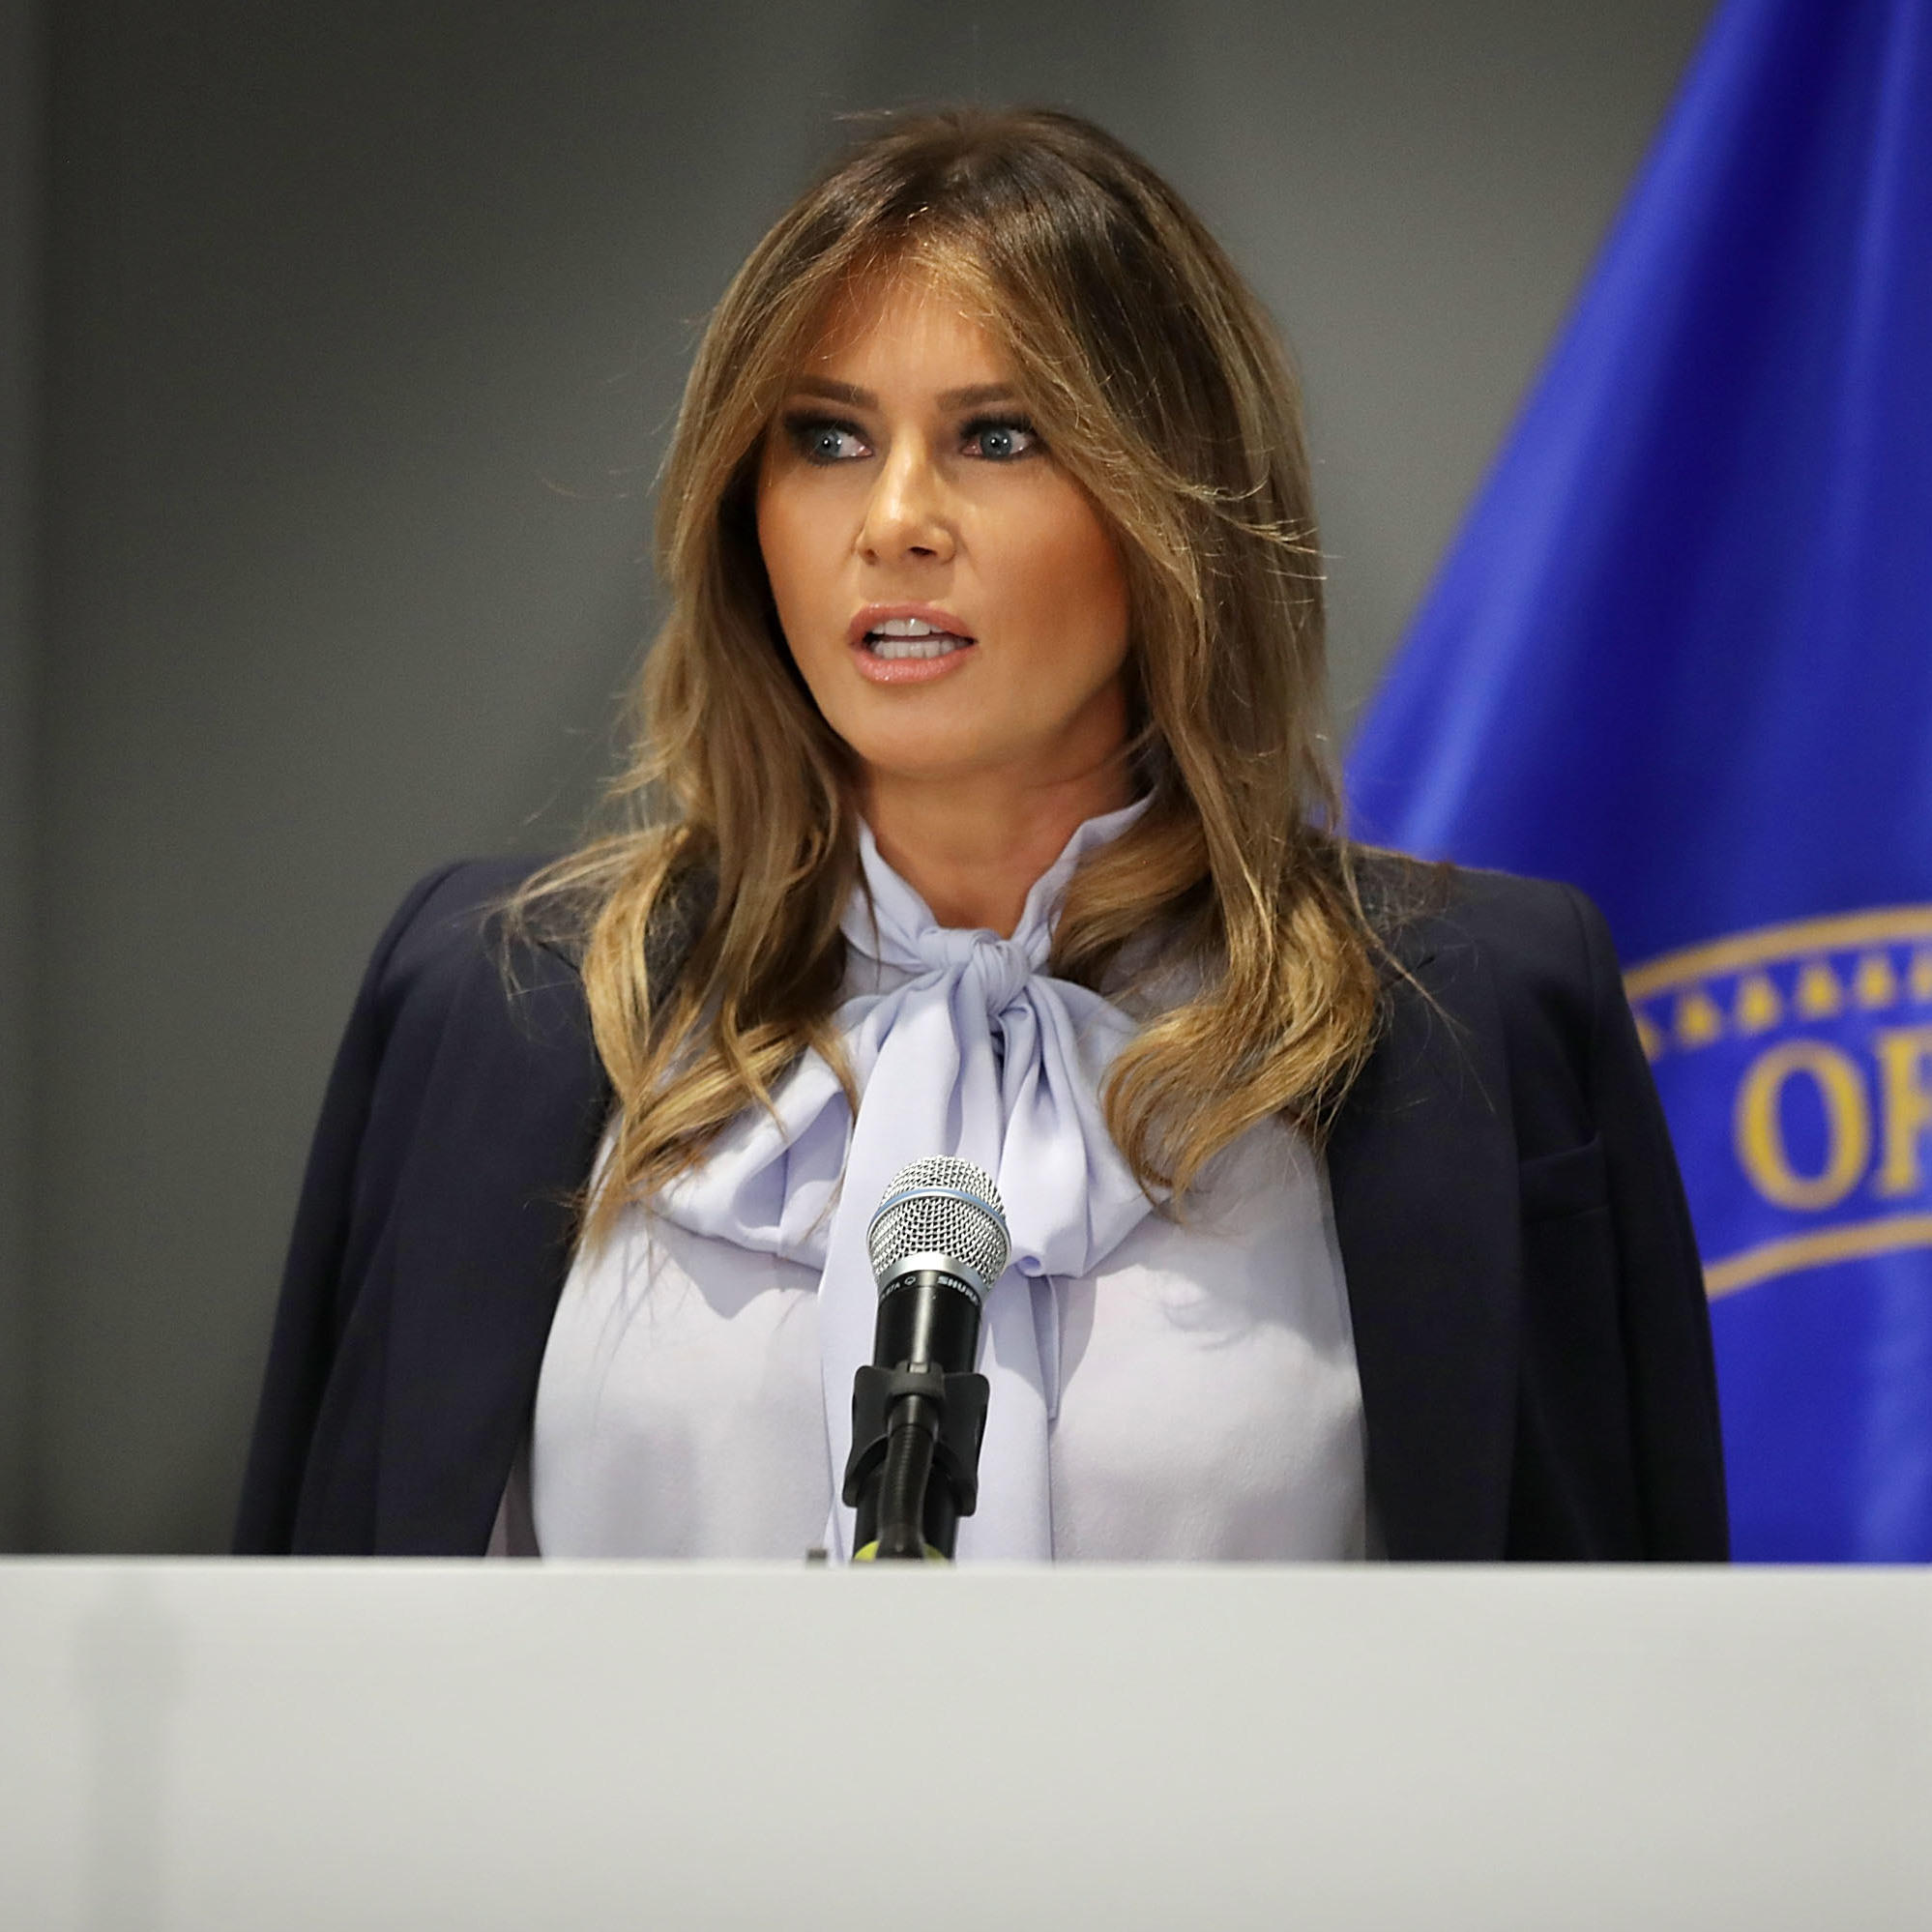 As The President Tweets Attacks, Melania Trump Speaks Out ...